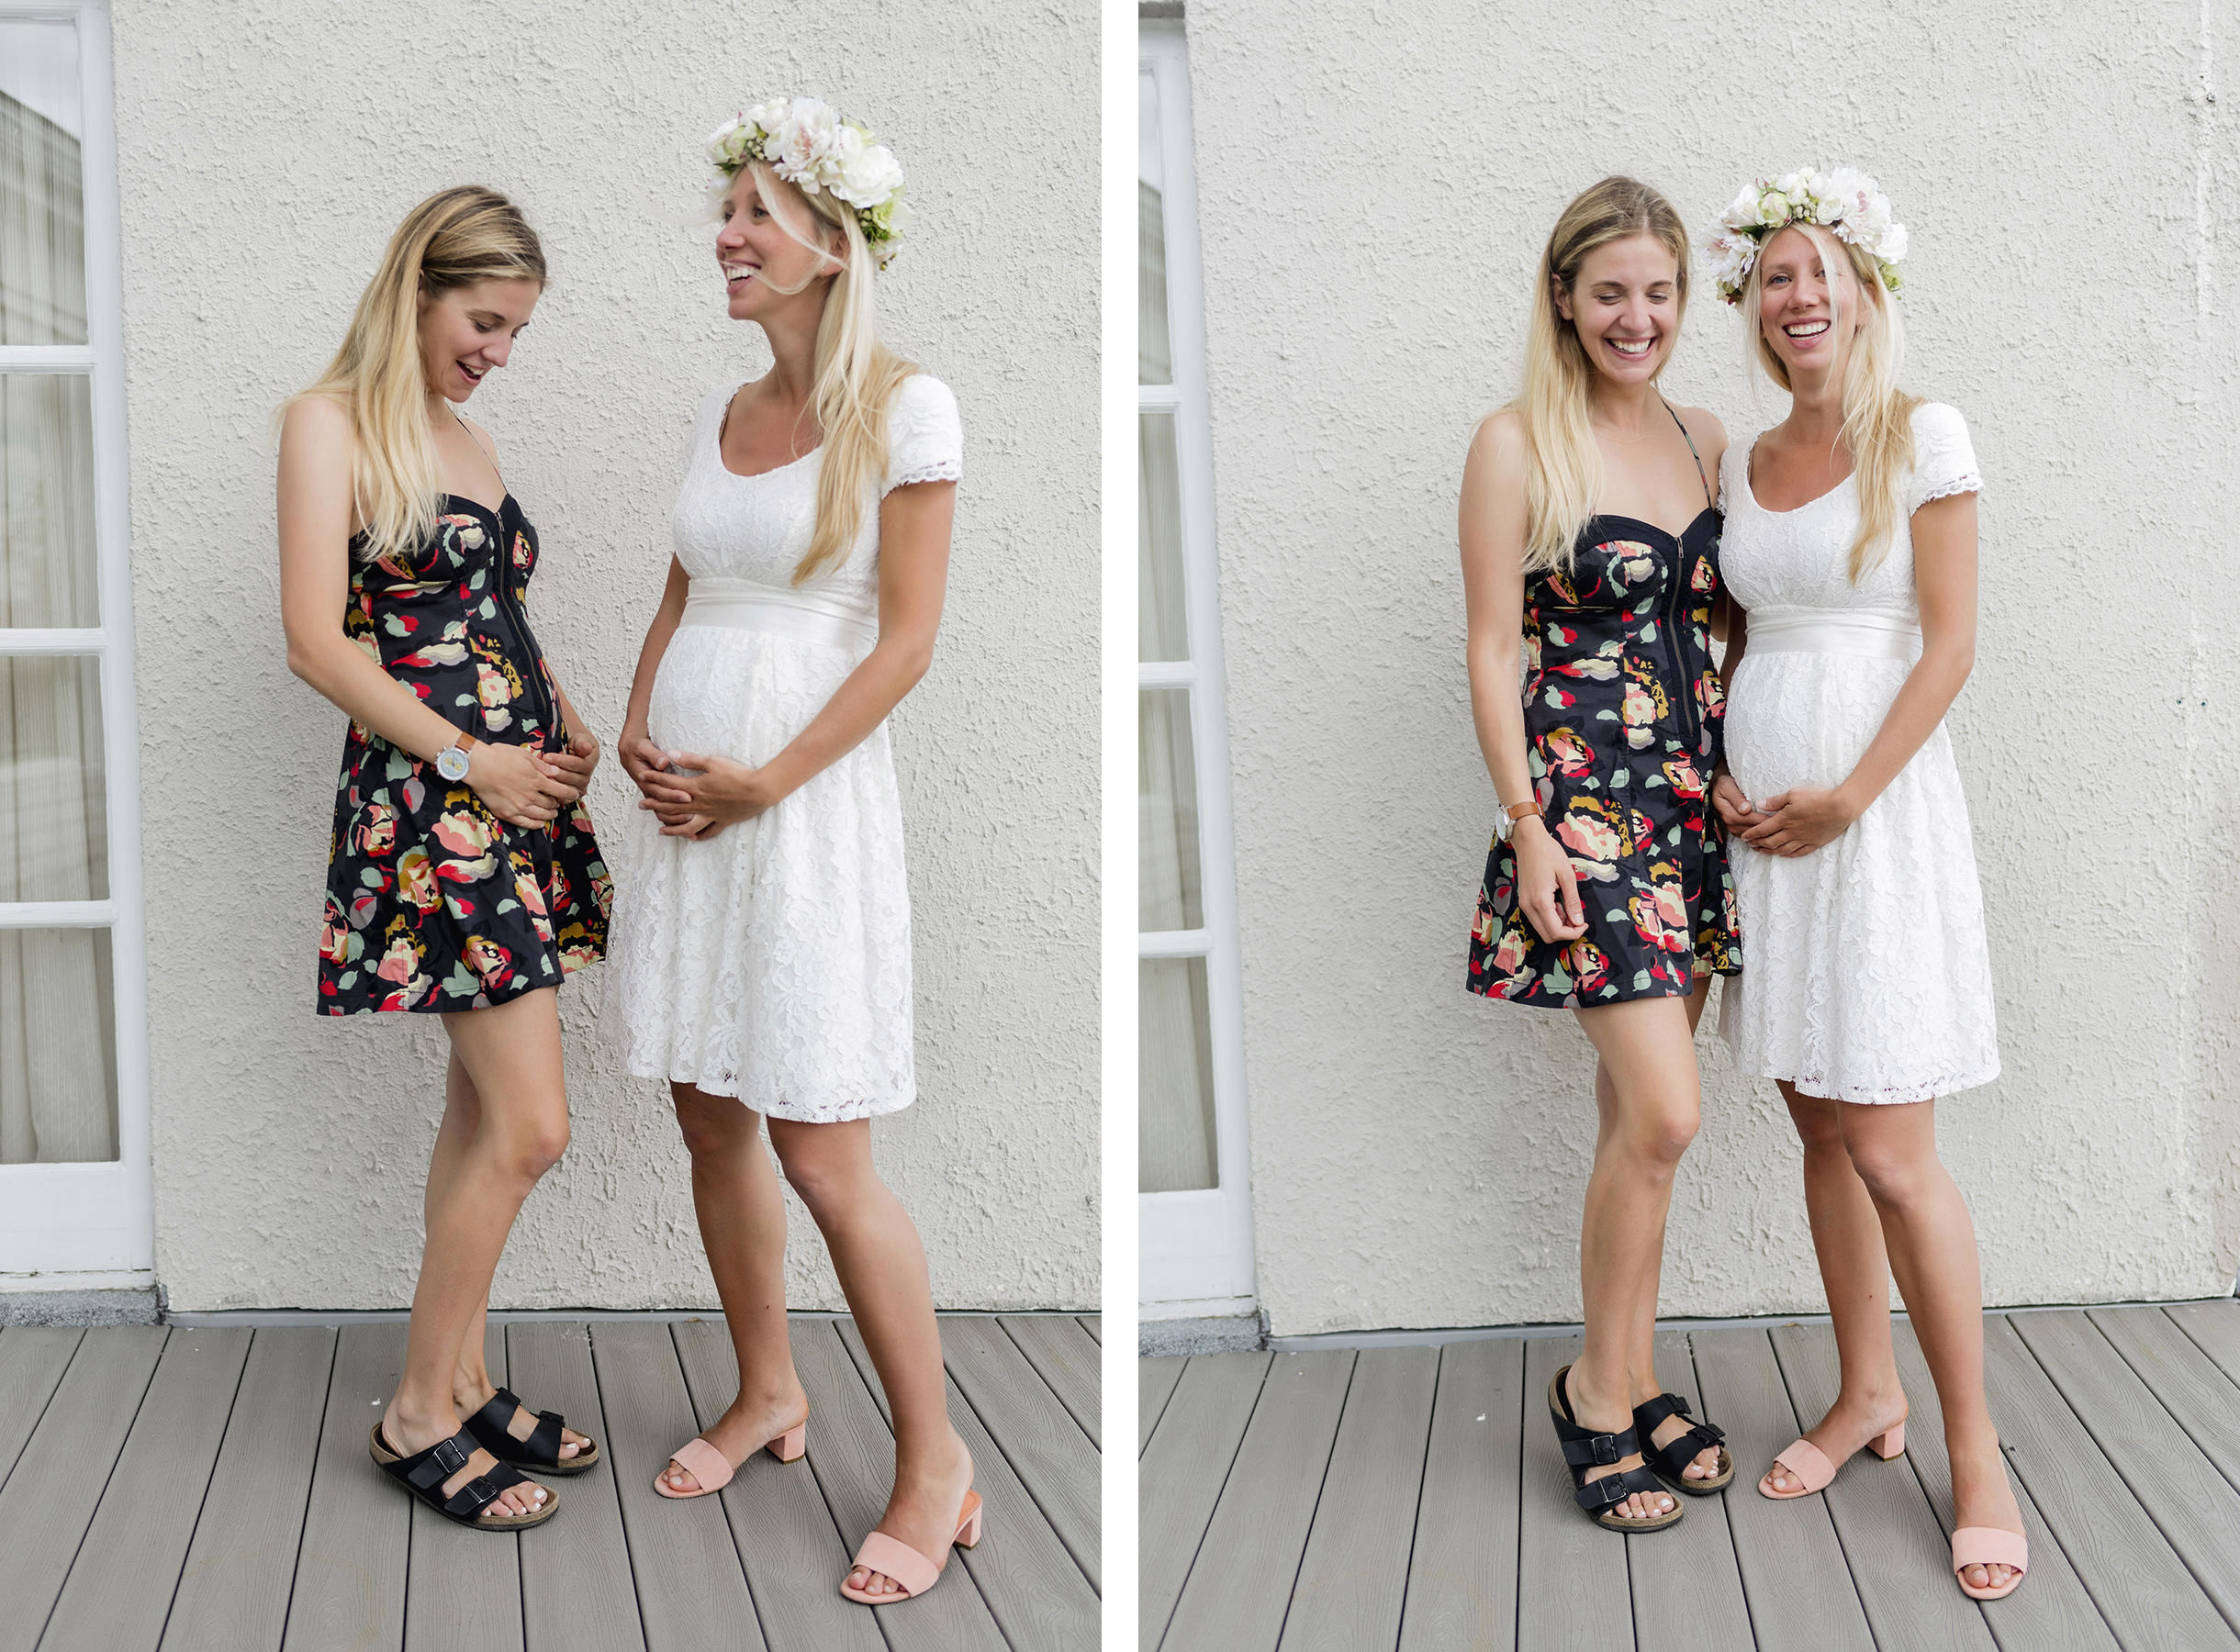 Maternity photoshoot | A wild + boho baby shower with pastel colours + rustic details